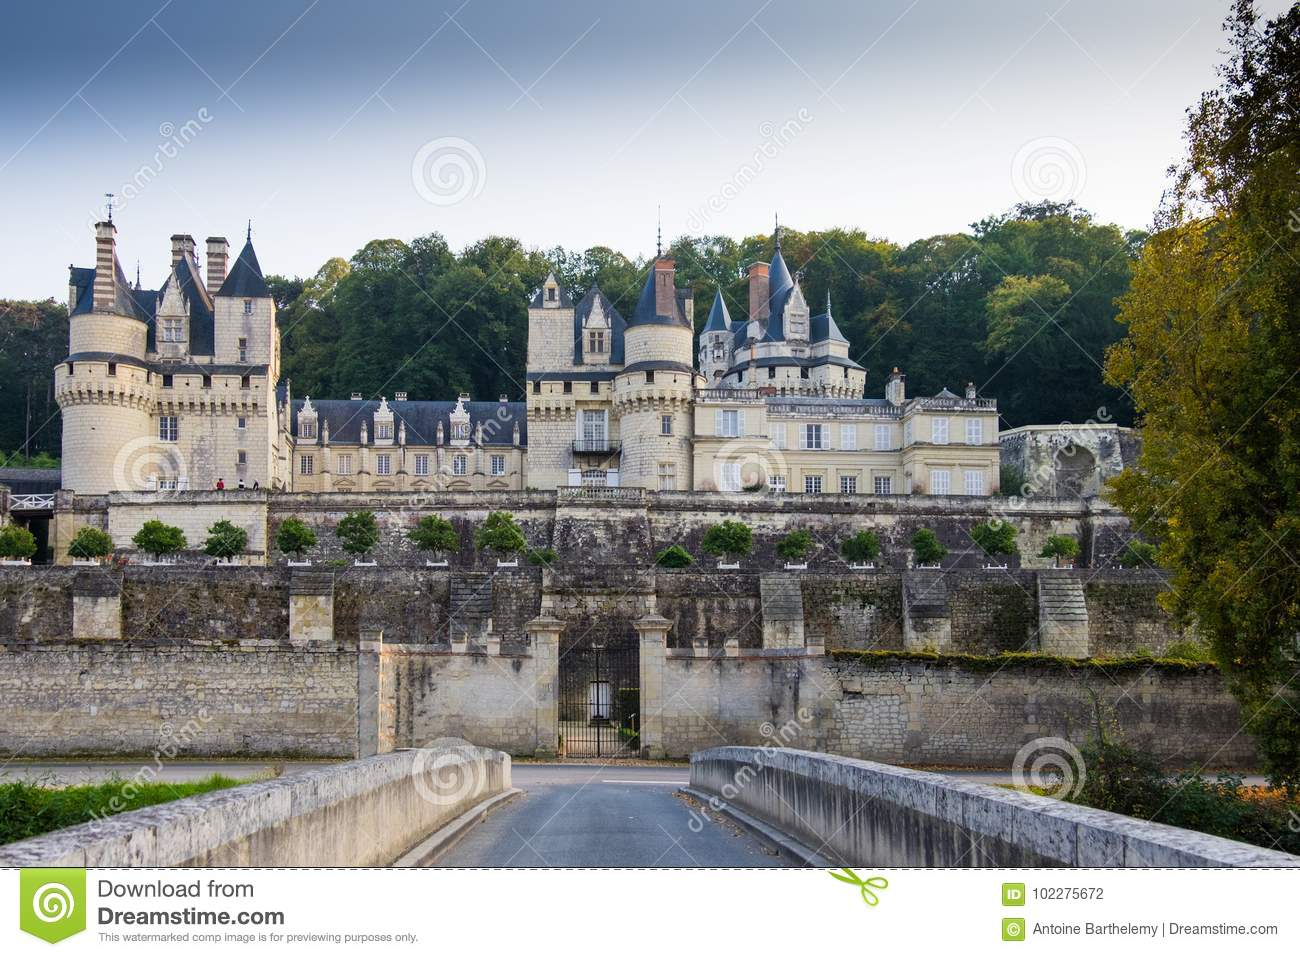 Chateau d` Ussé, Loire valley, France